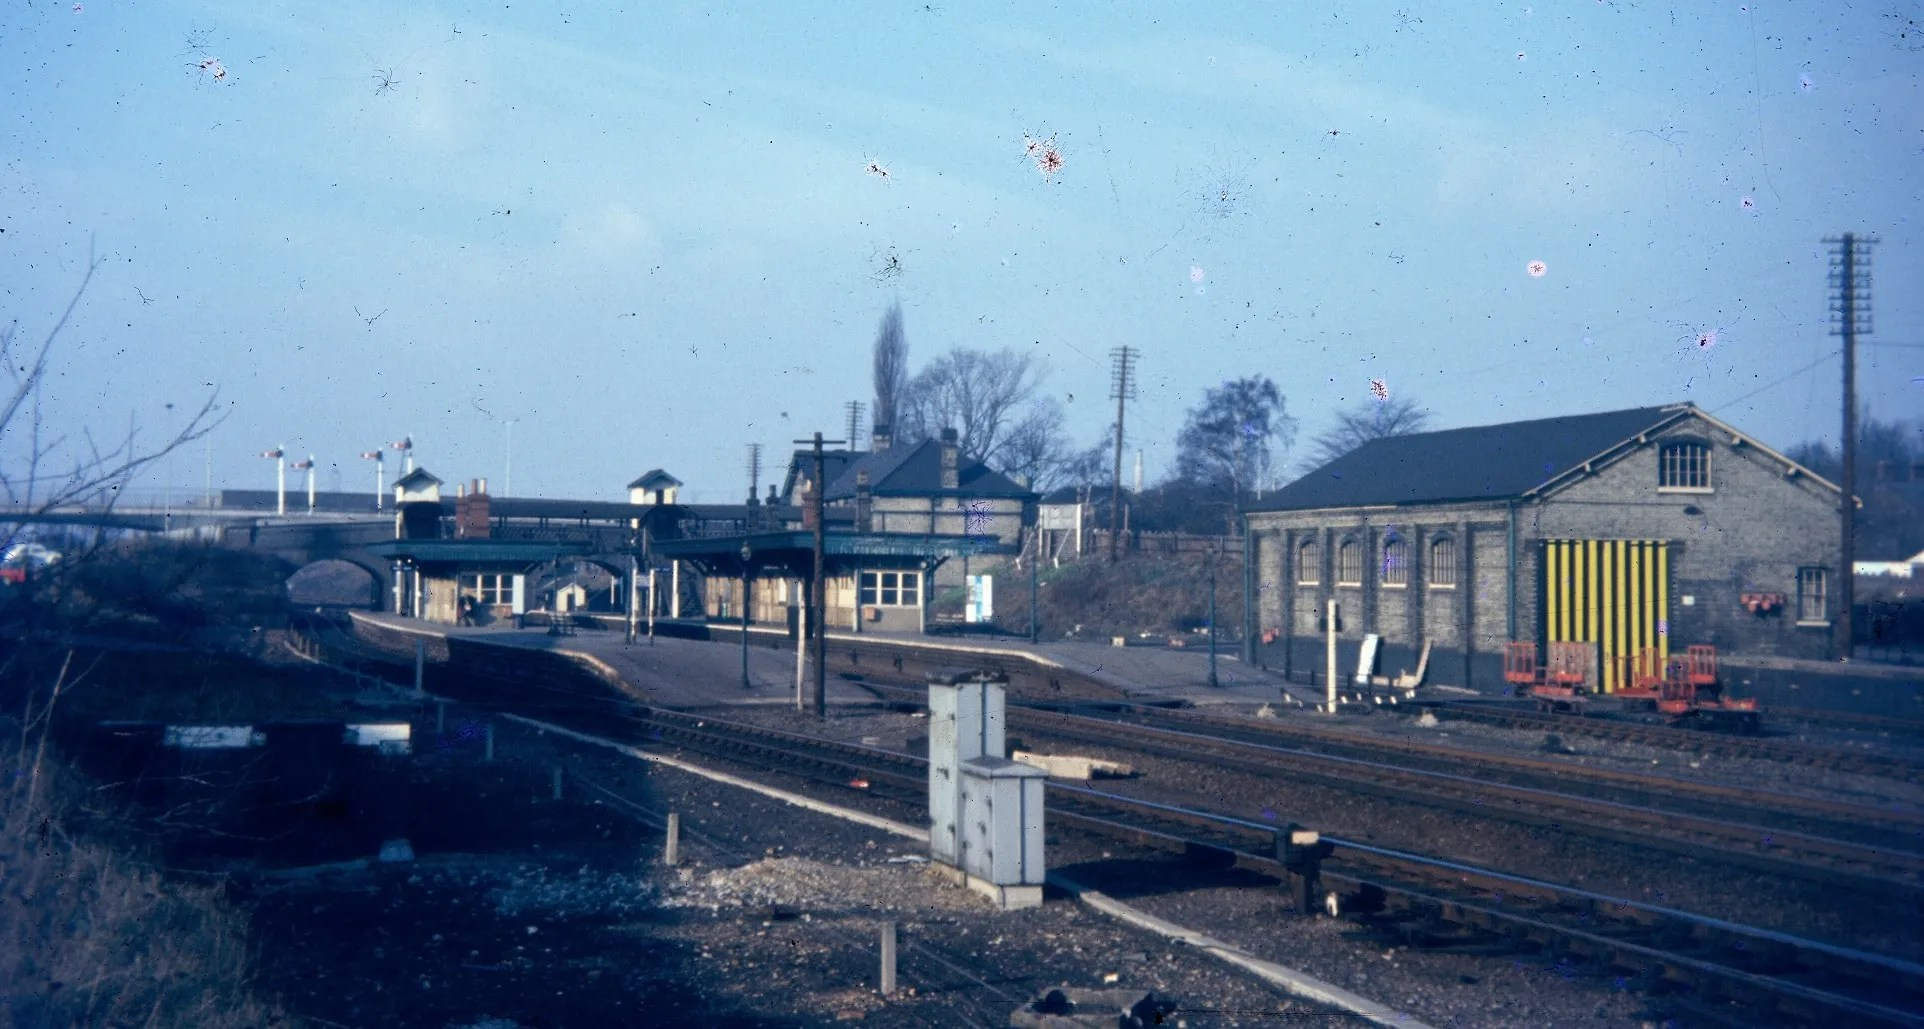 Old railway photo of Stevenage Railway Station